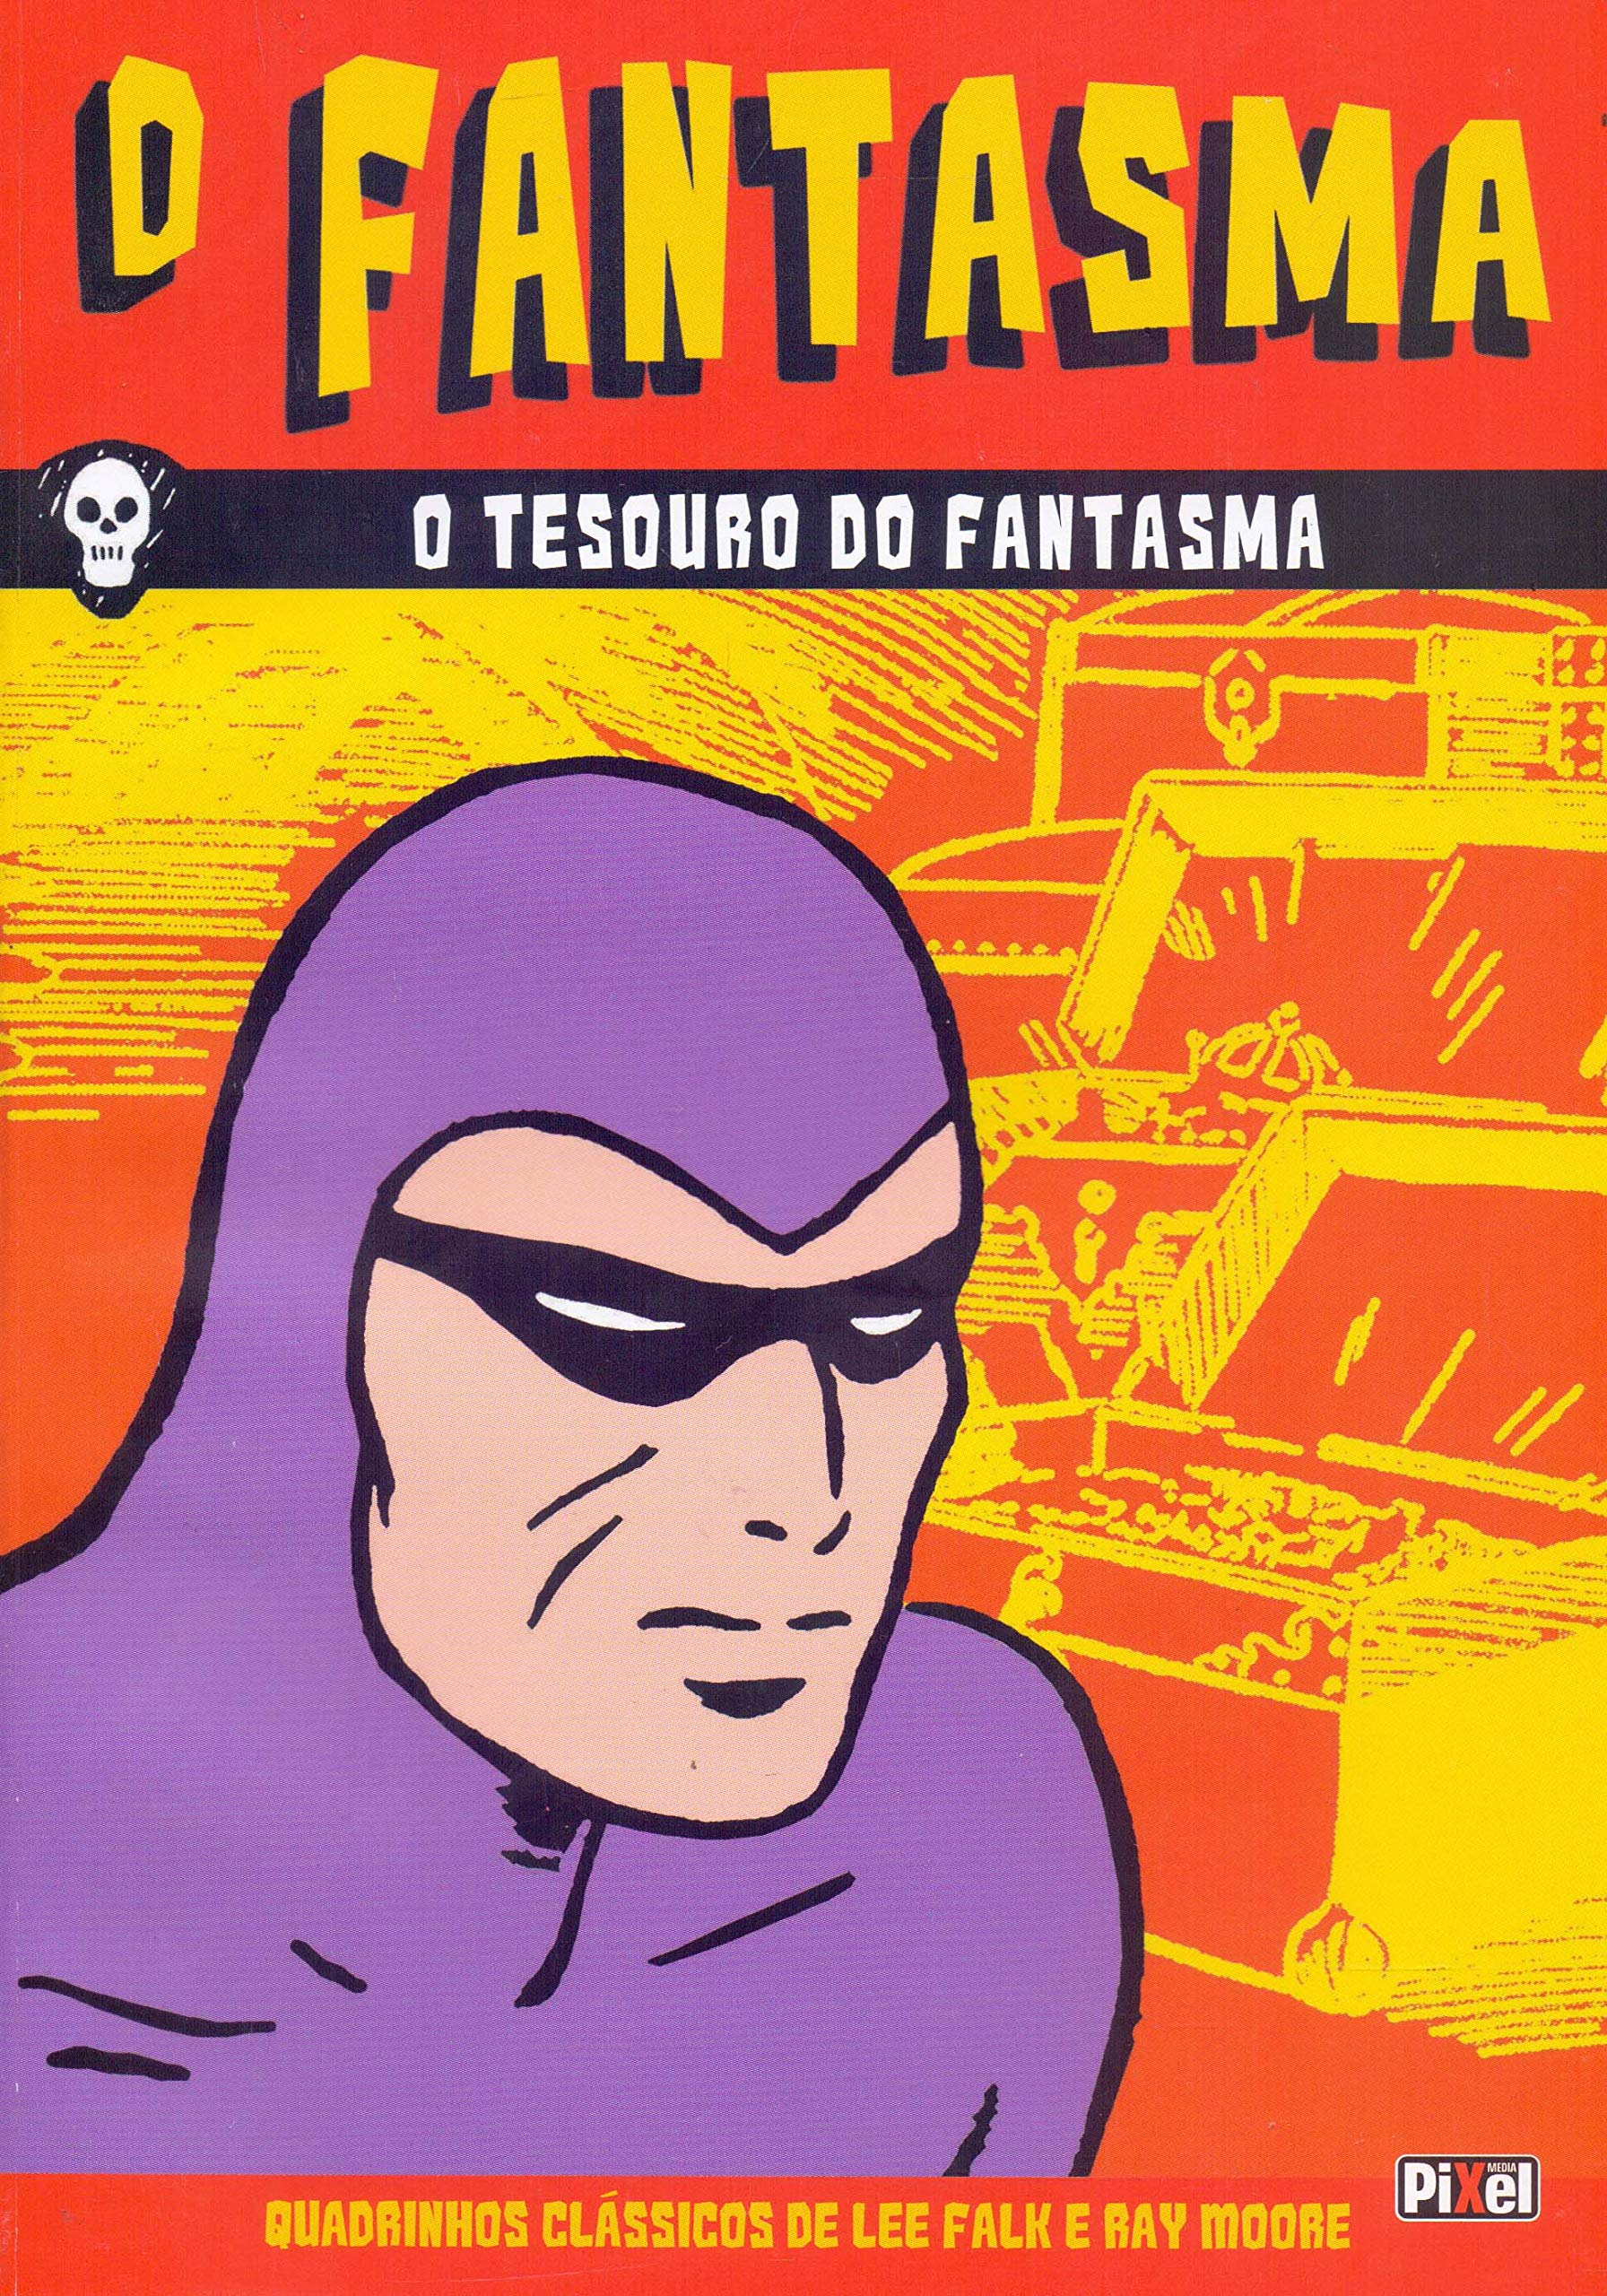 Resenha | O Fantasma: O Tesouro do Fantasma